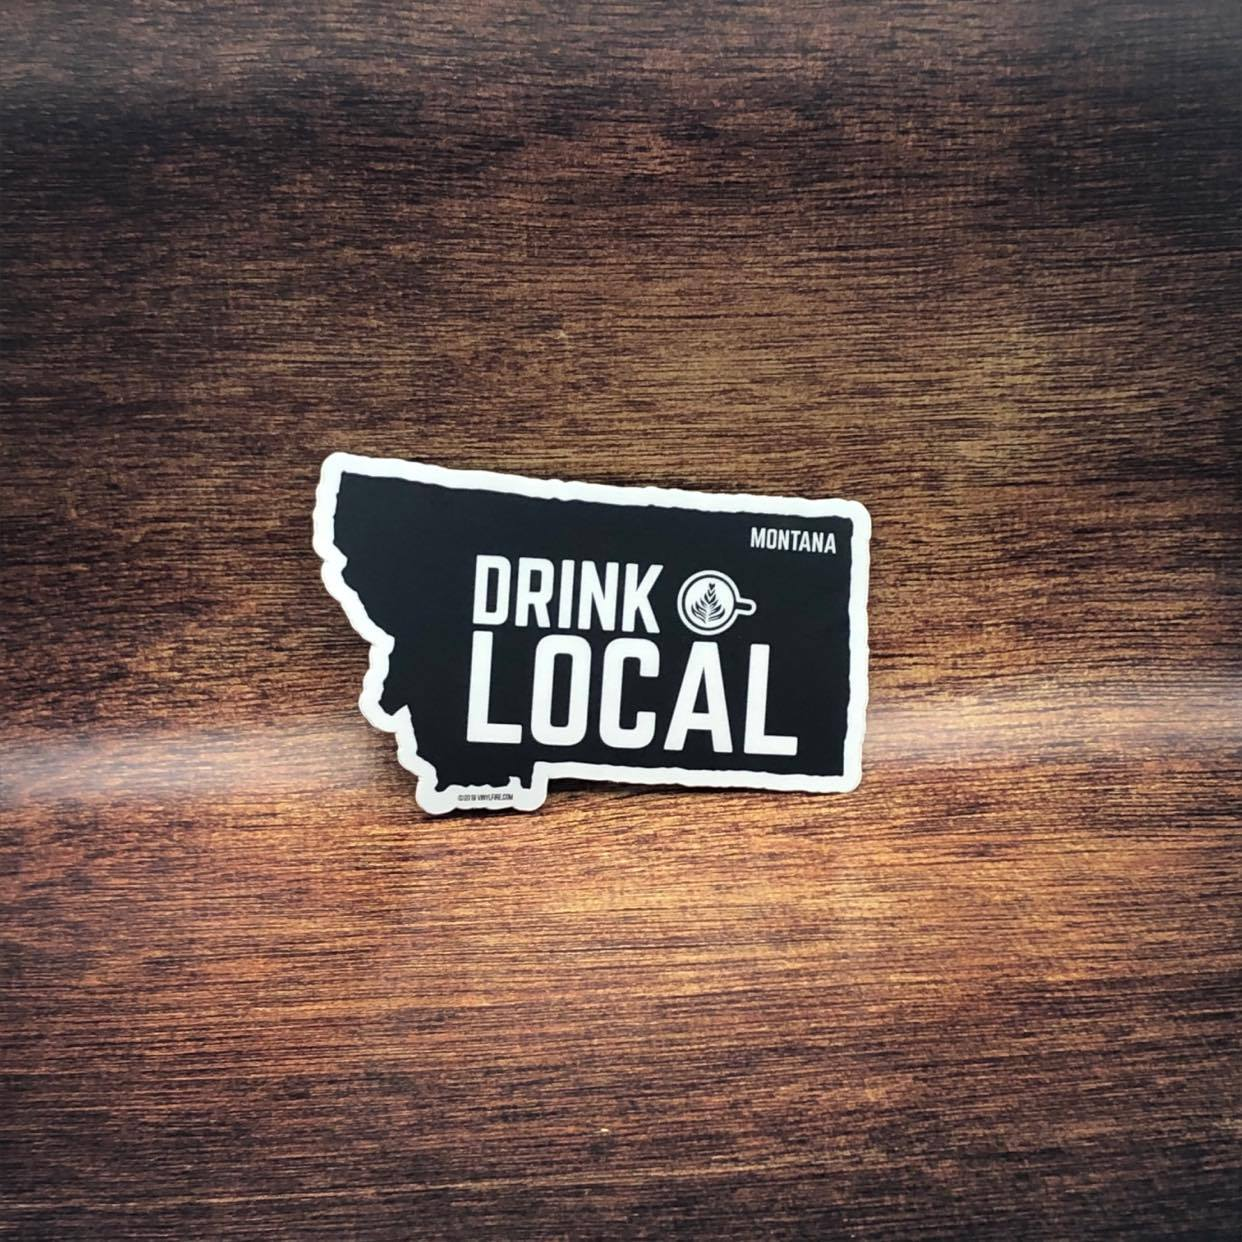 Drink Local Montana Sticker